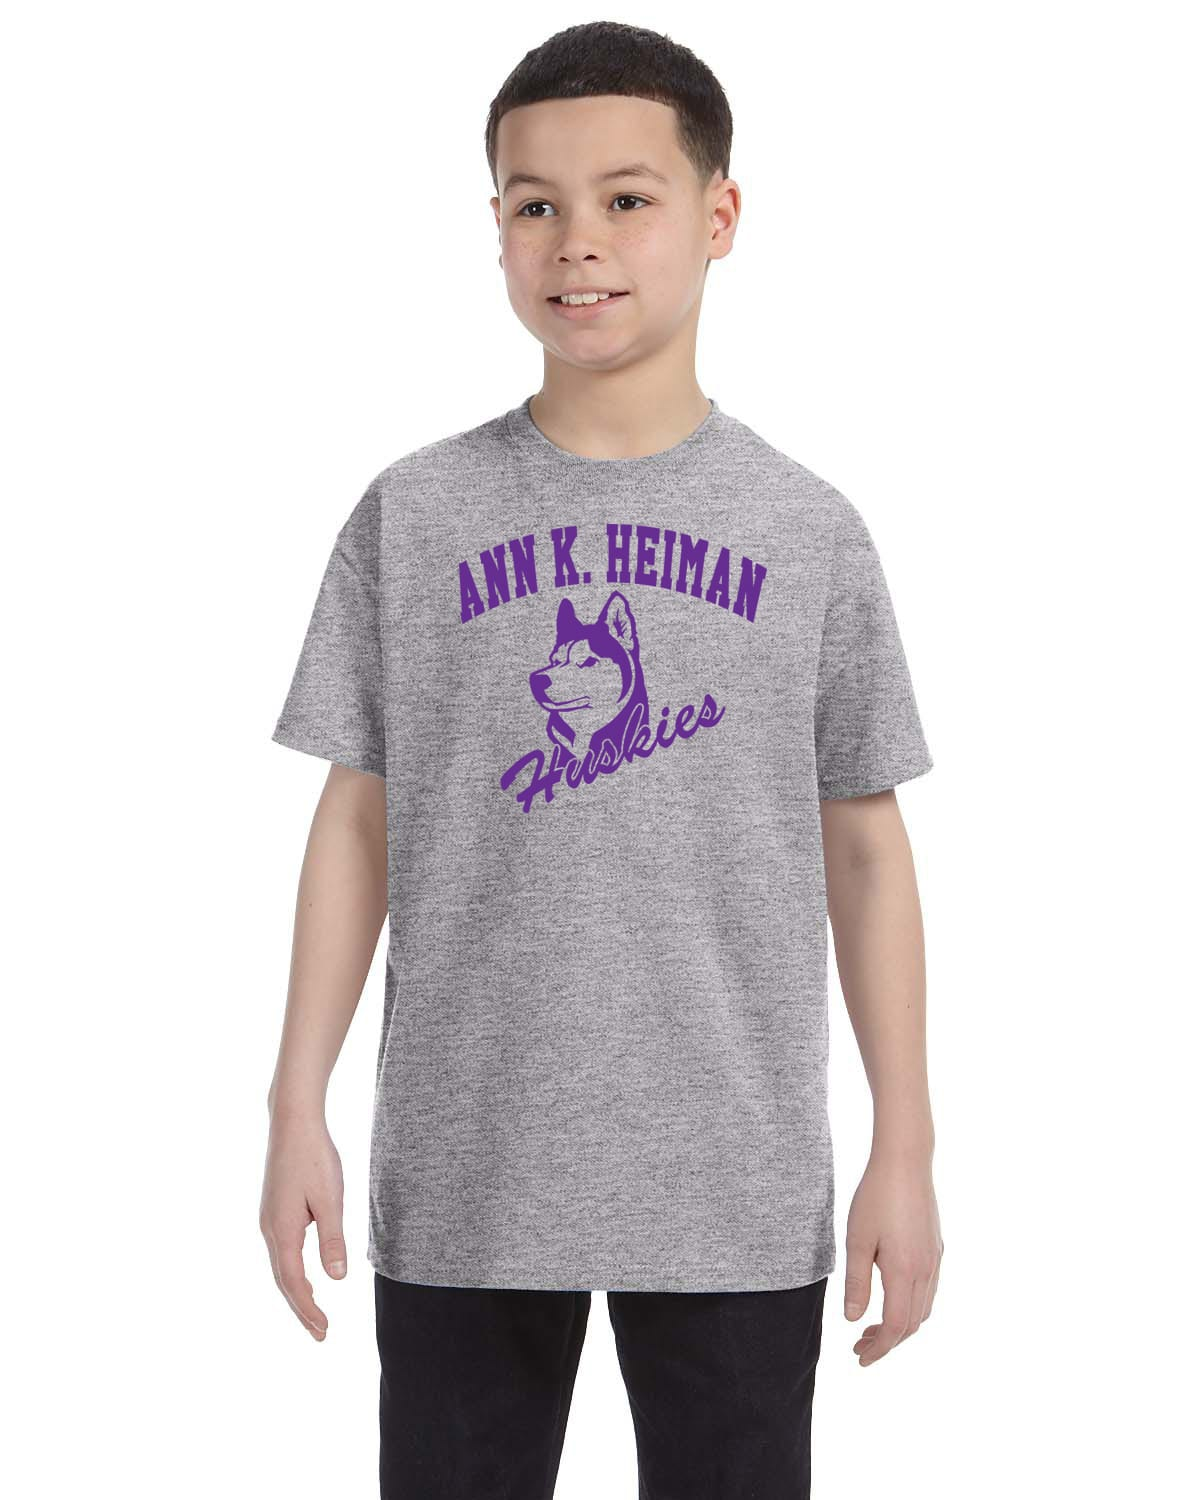 Heiman Elementary School Youth Grey Short Sleeve Cotton T-shirt